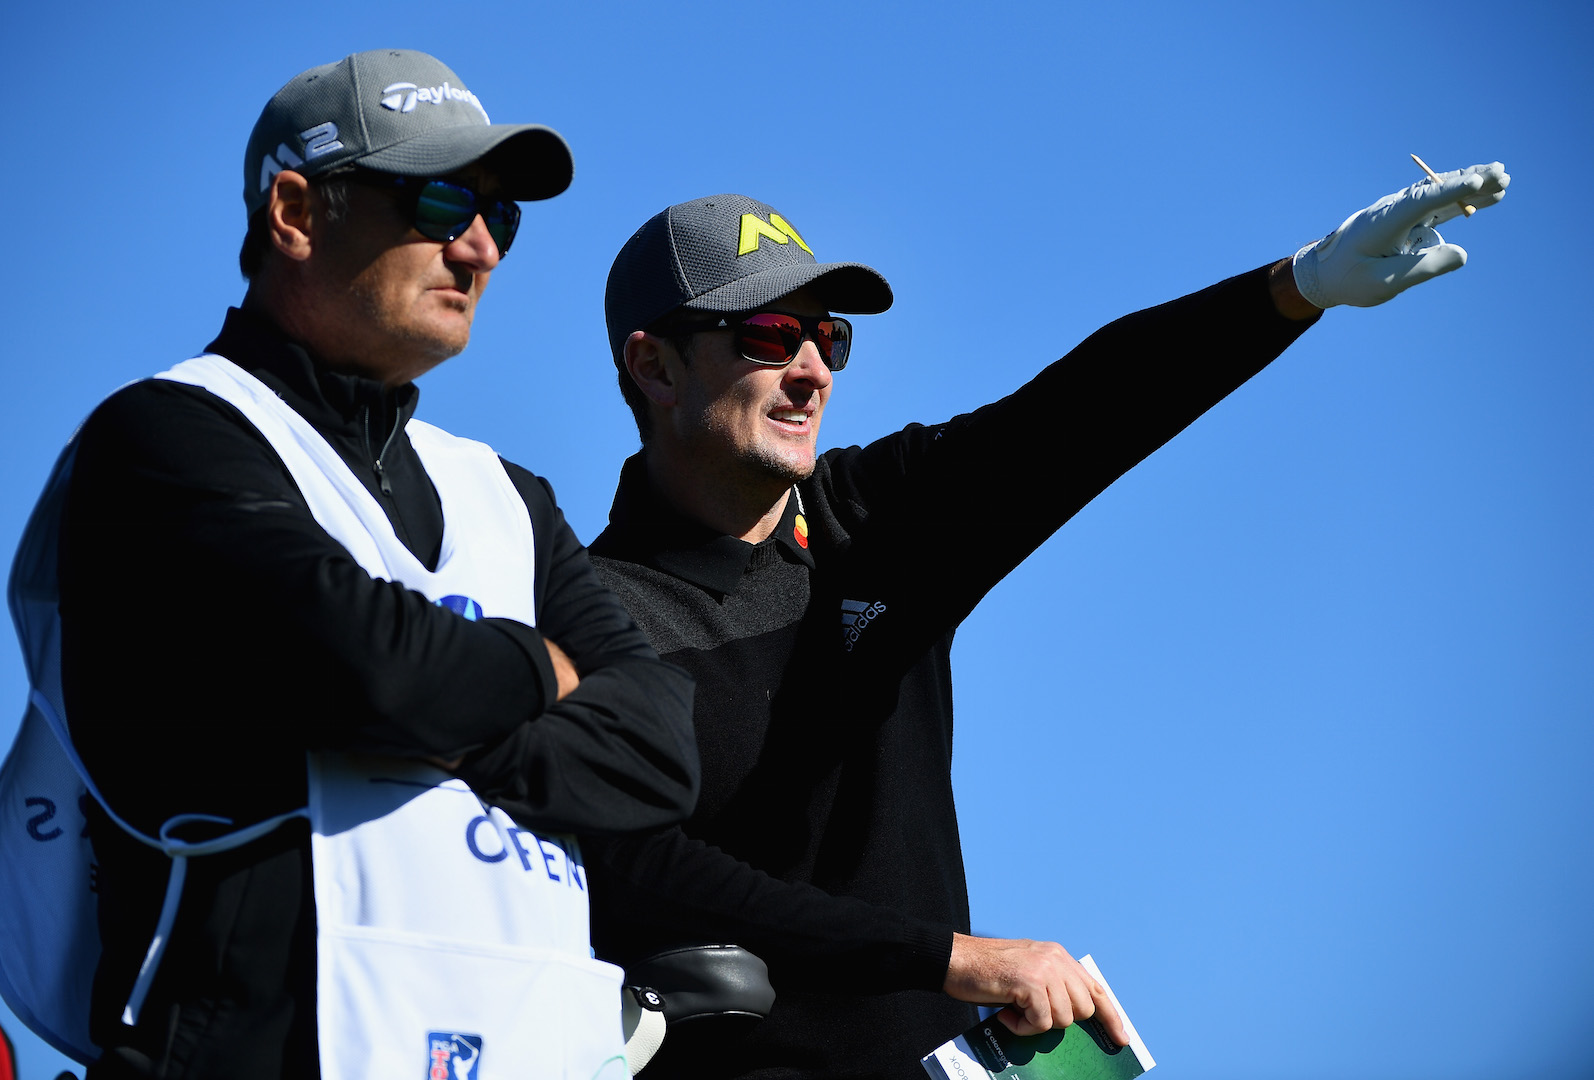 Top stars miss the cut at Torrey Pines